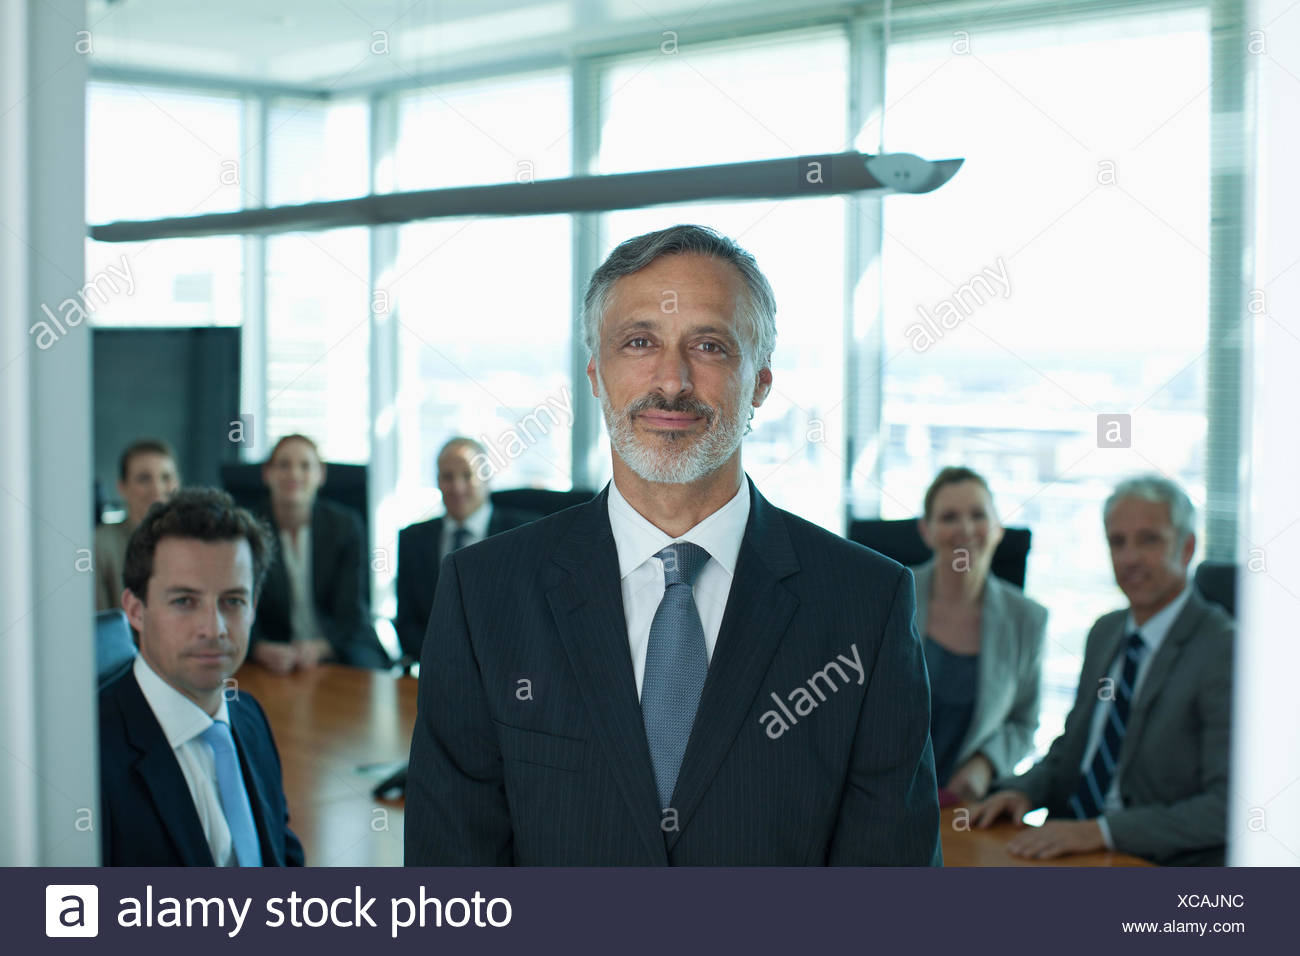 Portrait of smiling businessman and co-workers in conference room Stock Photo